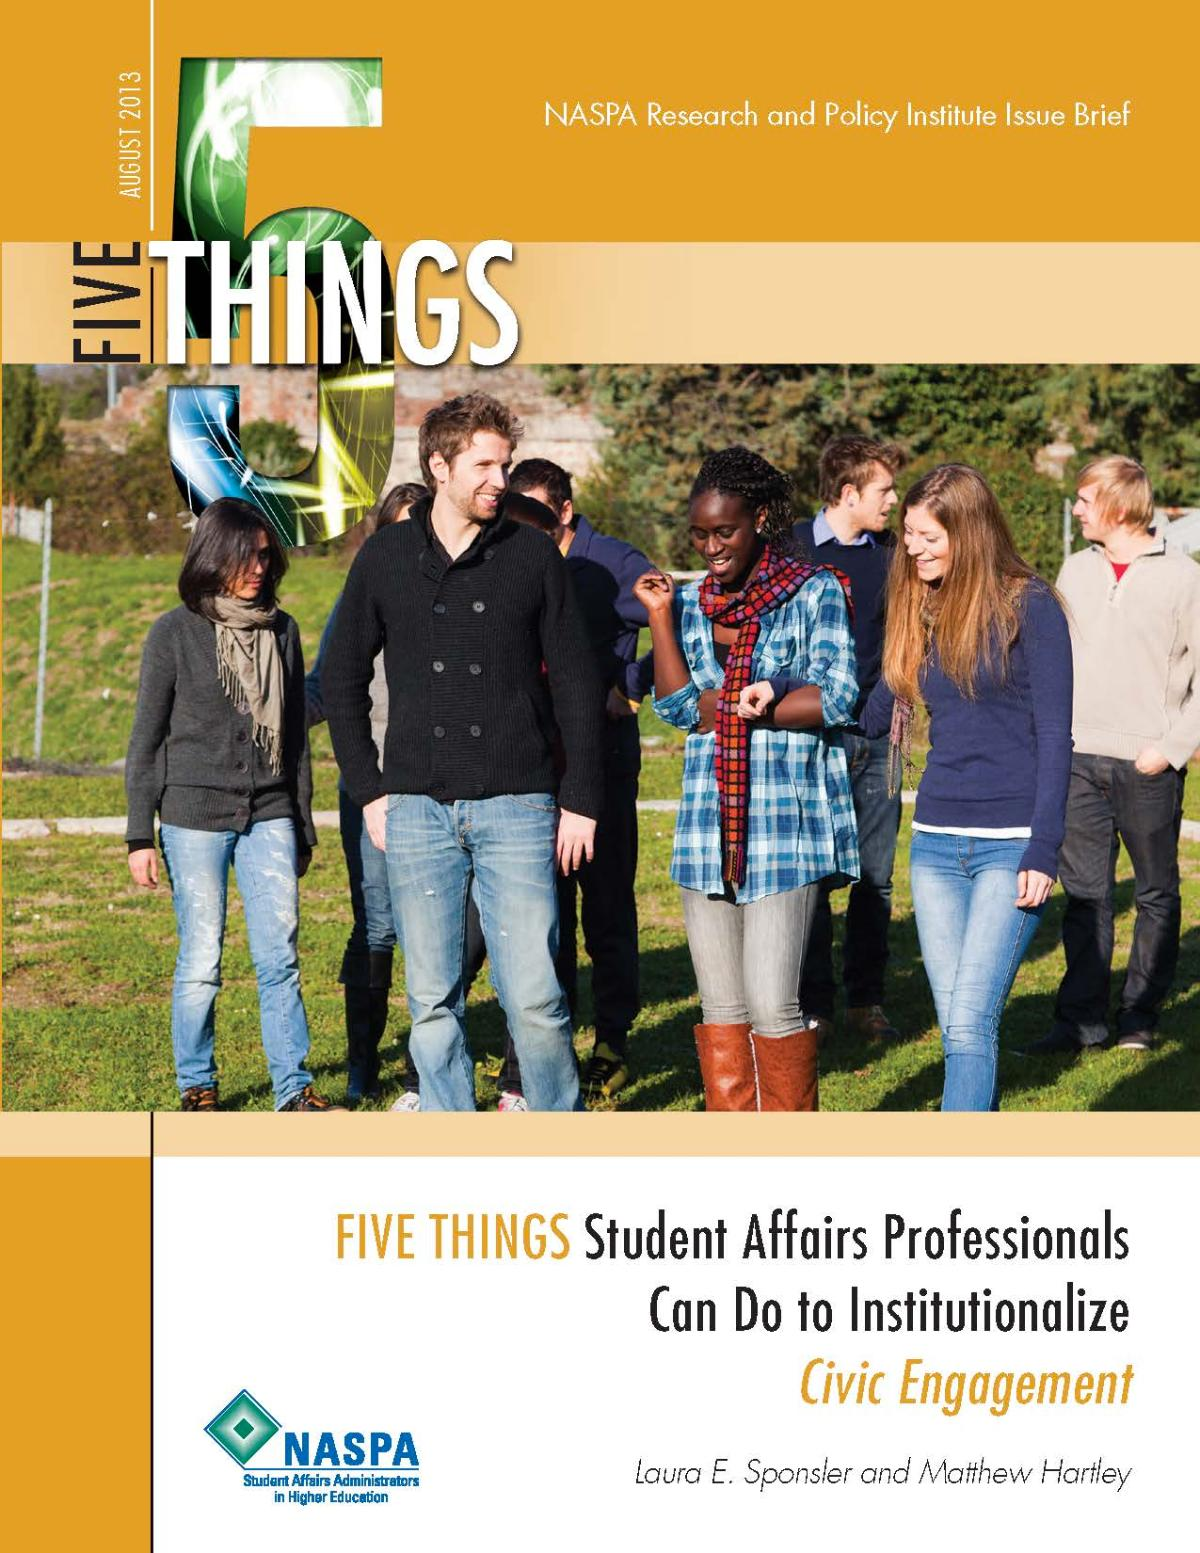 Five Things Student Affairs Professionals Can Do To Institutionalize Civic Engagement